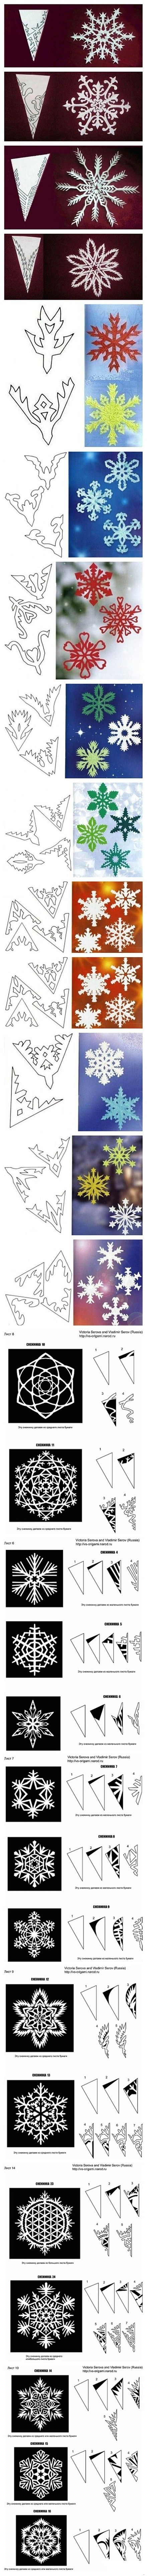 Snowflake Templates. Must remember this for Xmas 2013